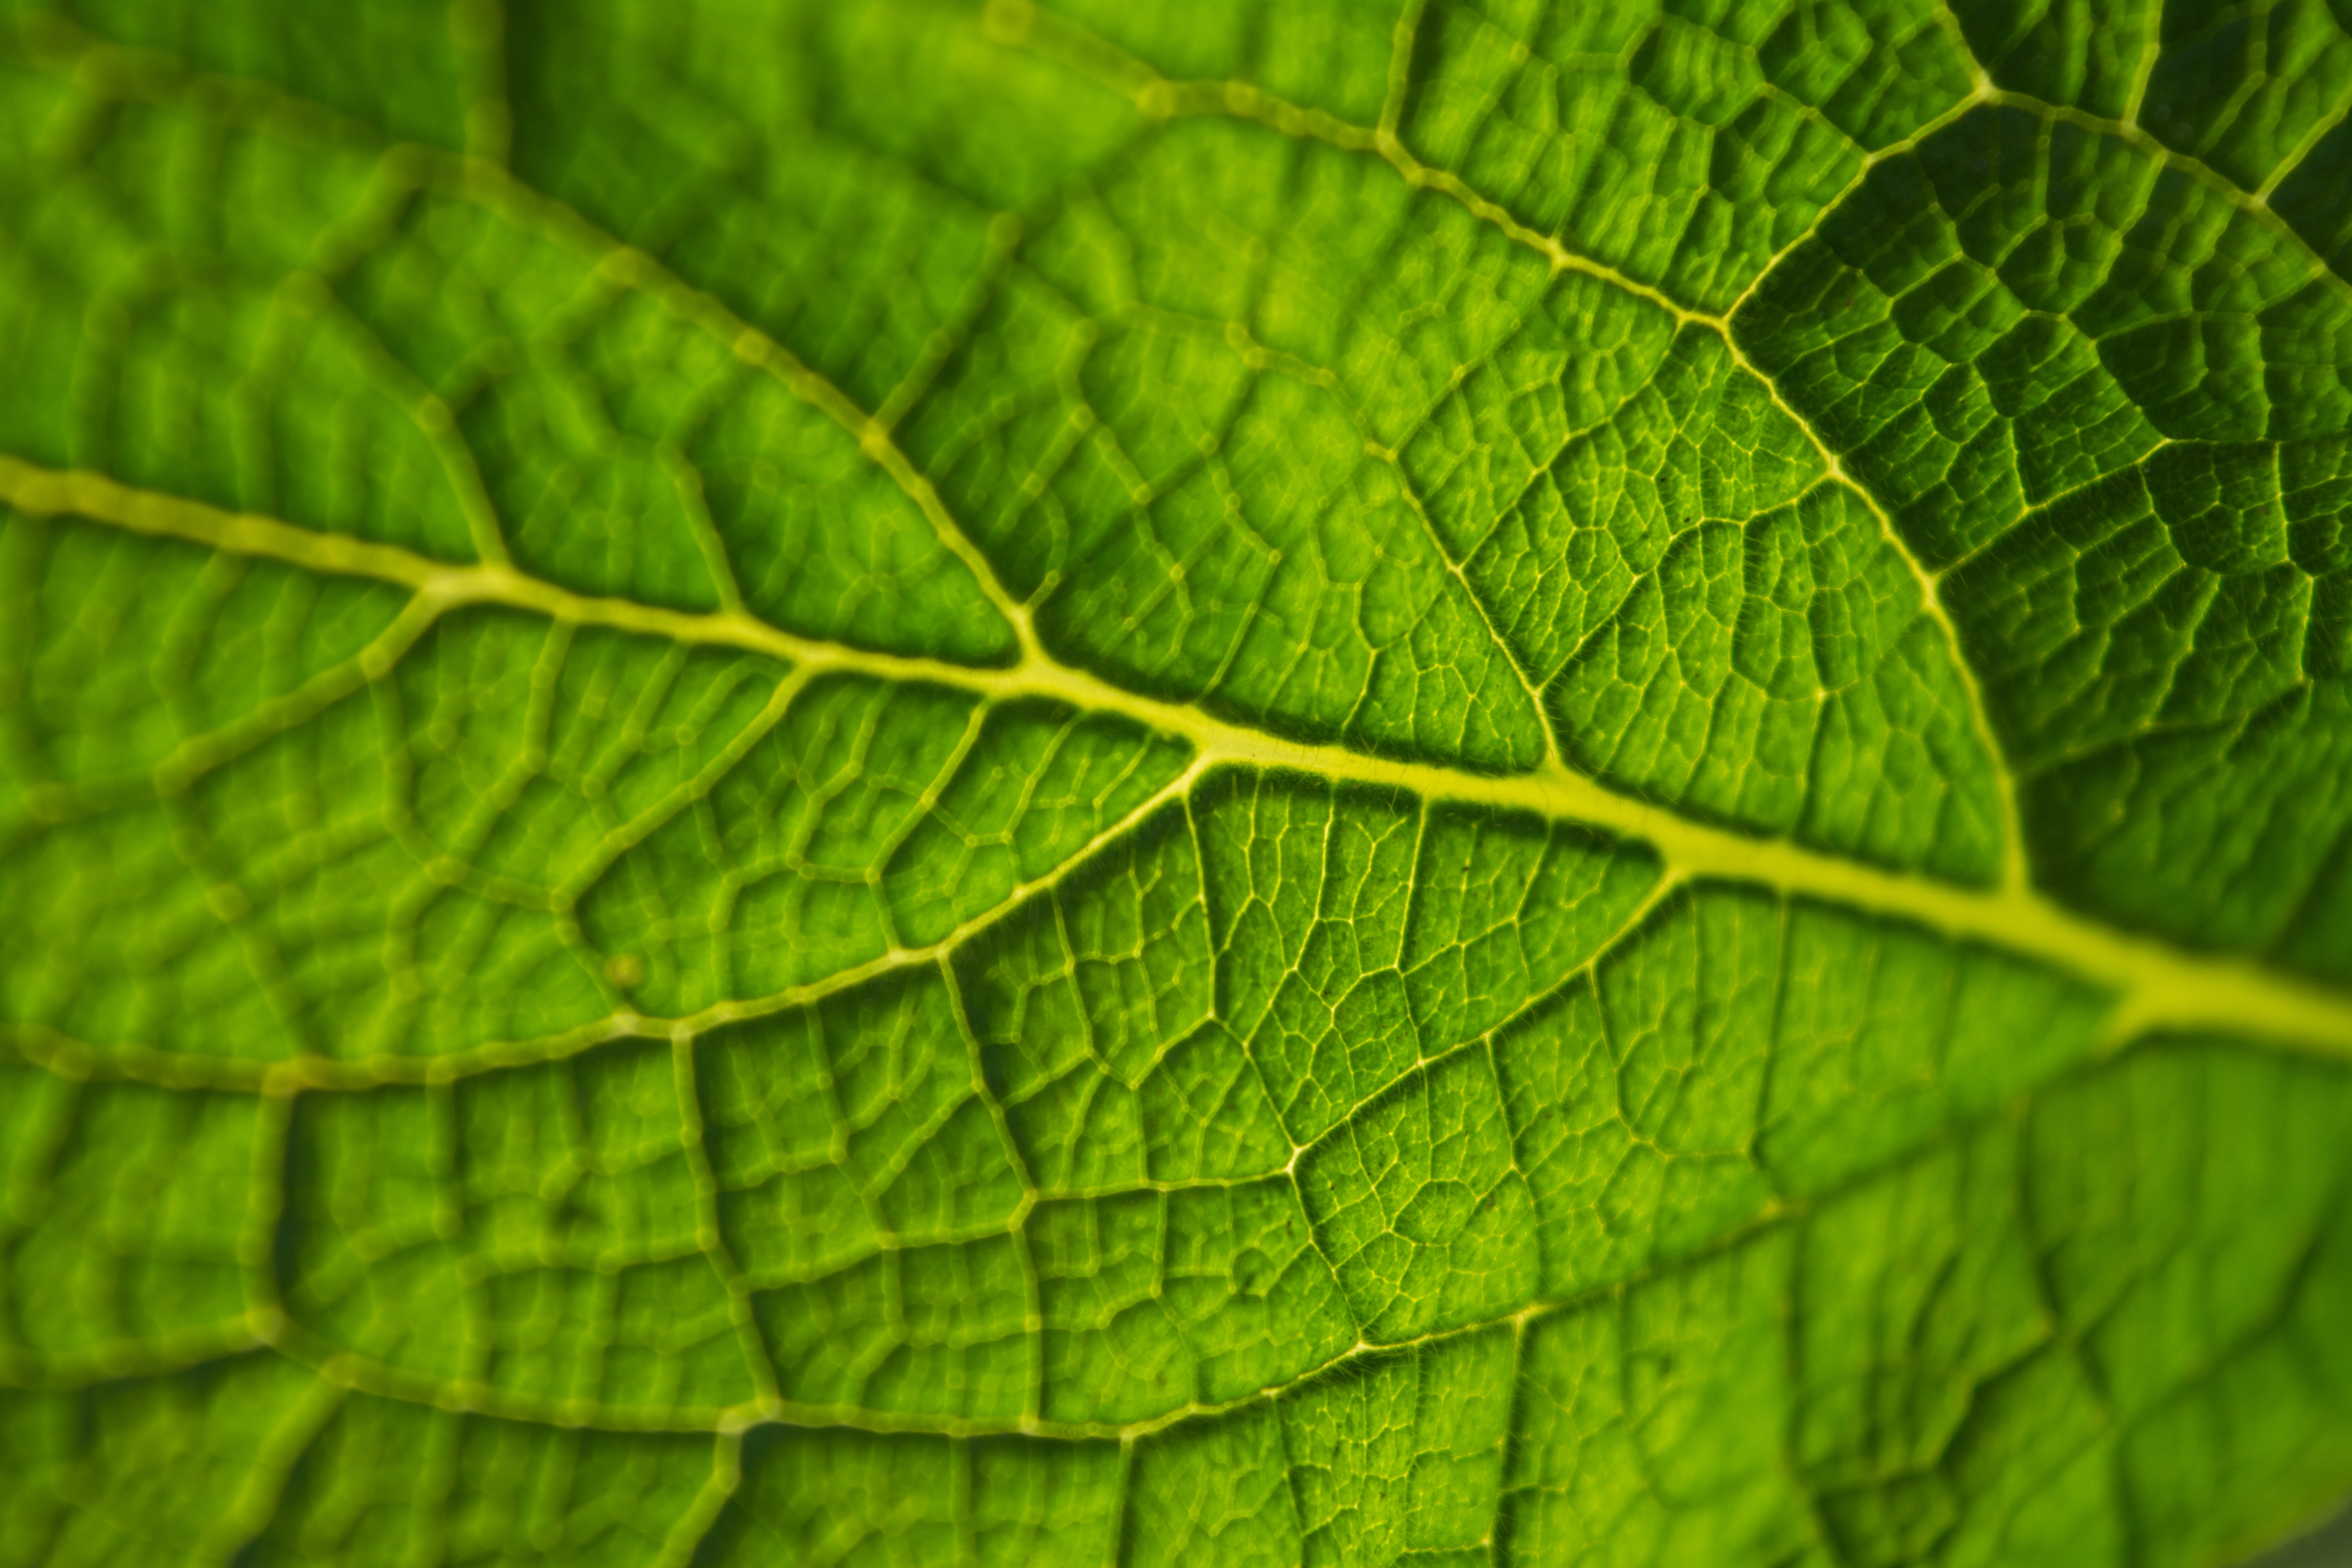 A macro shot of the surface of a translucent green leaf covered with a series of tiny veins